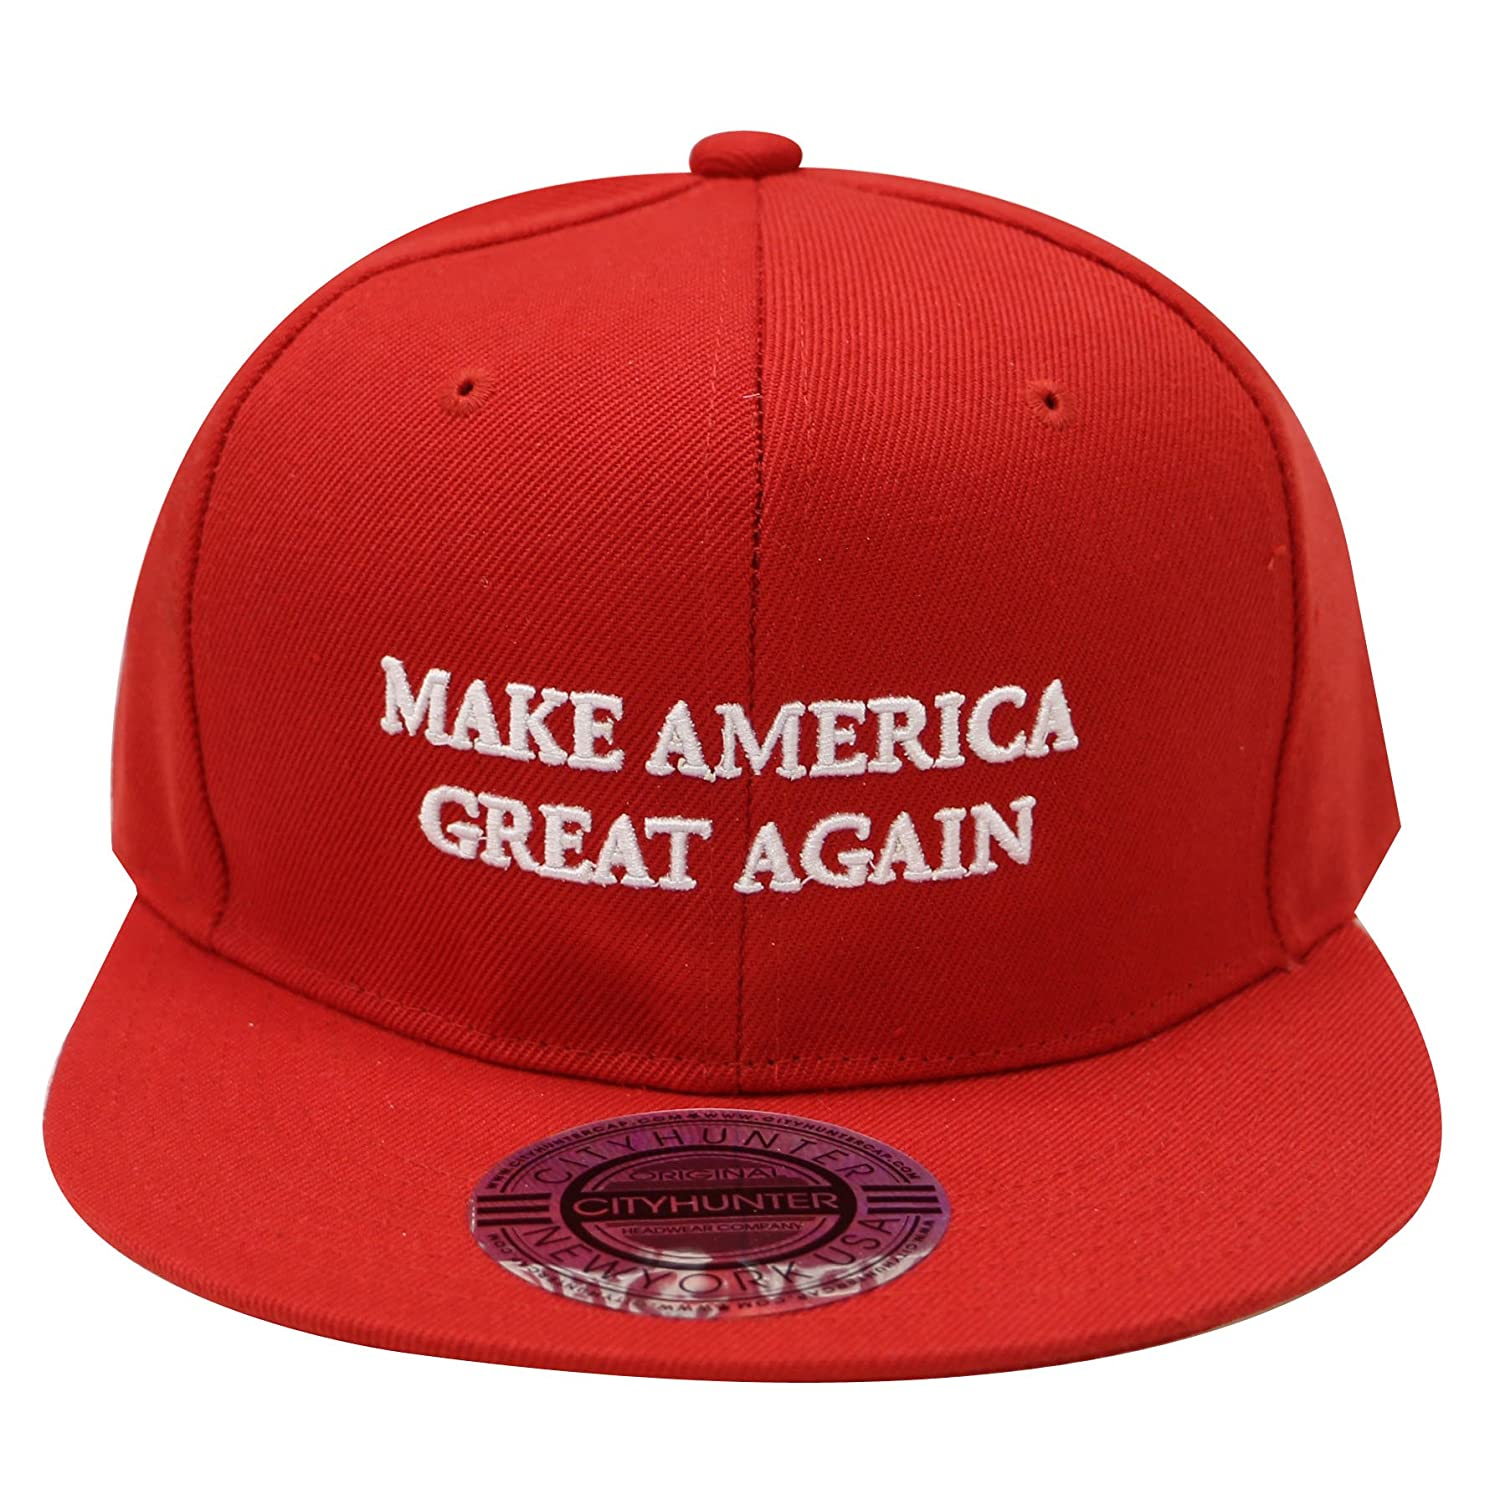 81052430cde CITY HUNTER Cf918 Trump Make America Great Again Snapback Cap Red at Amazon  Men s Clothing store